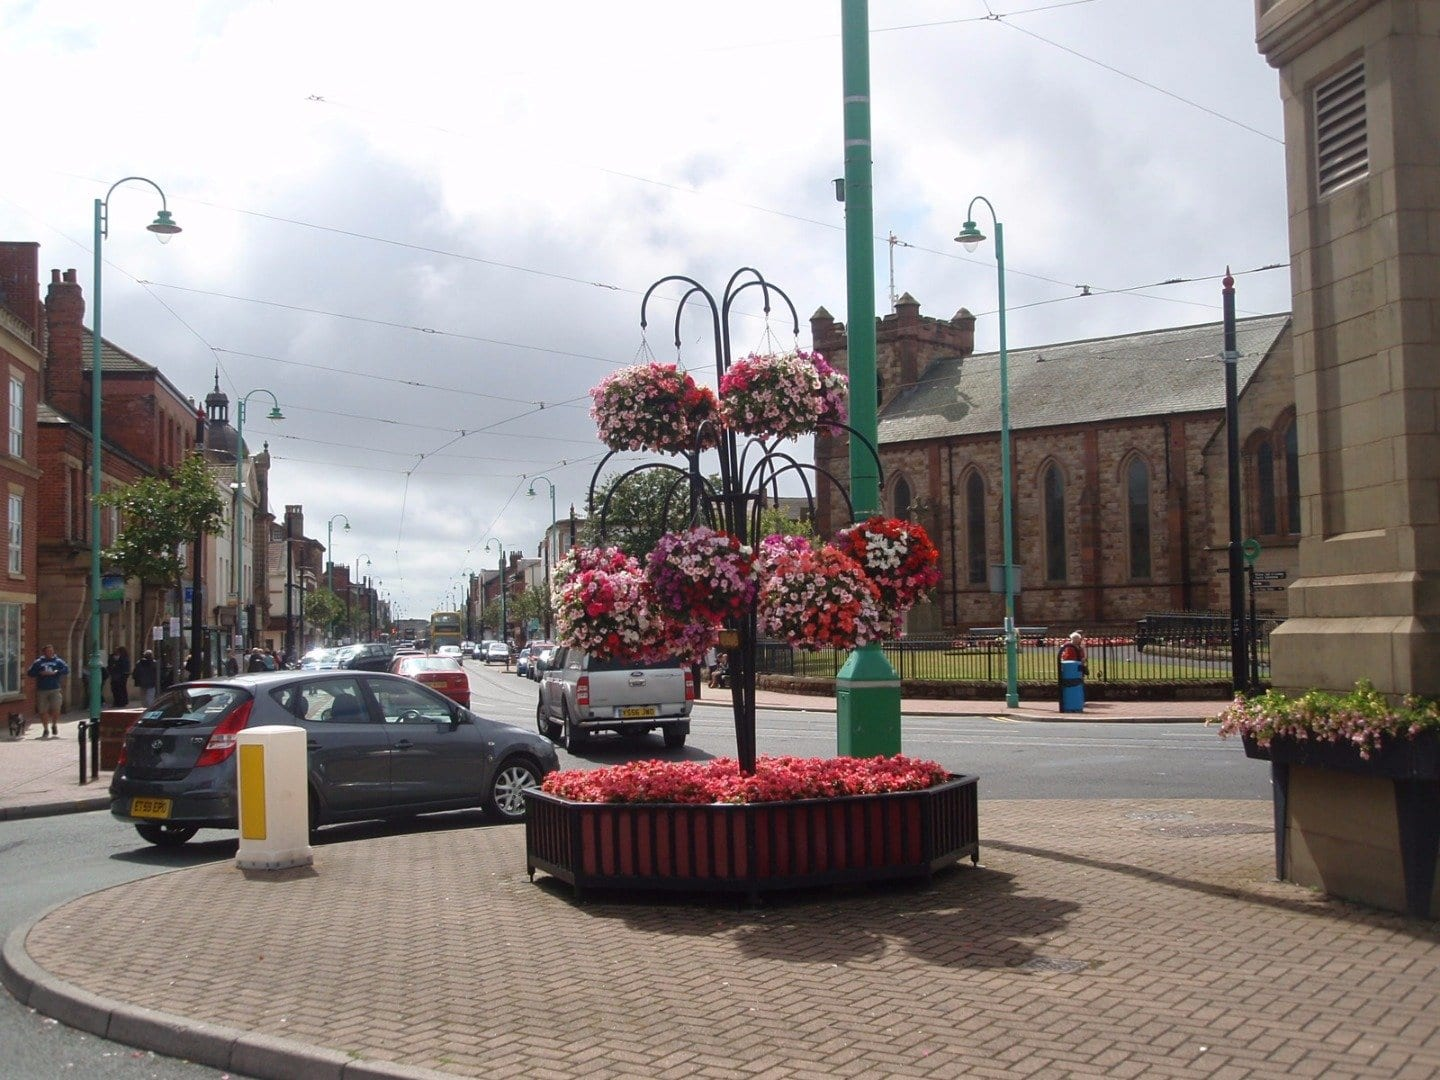 Flower baskets near Fleetwood Market on Lord Street